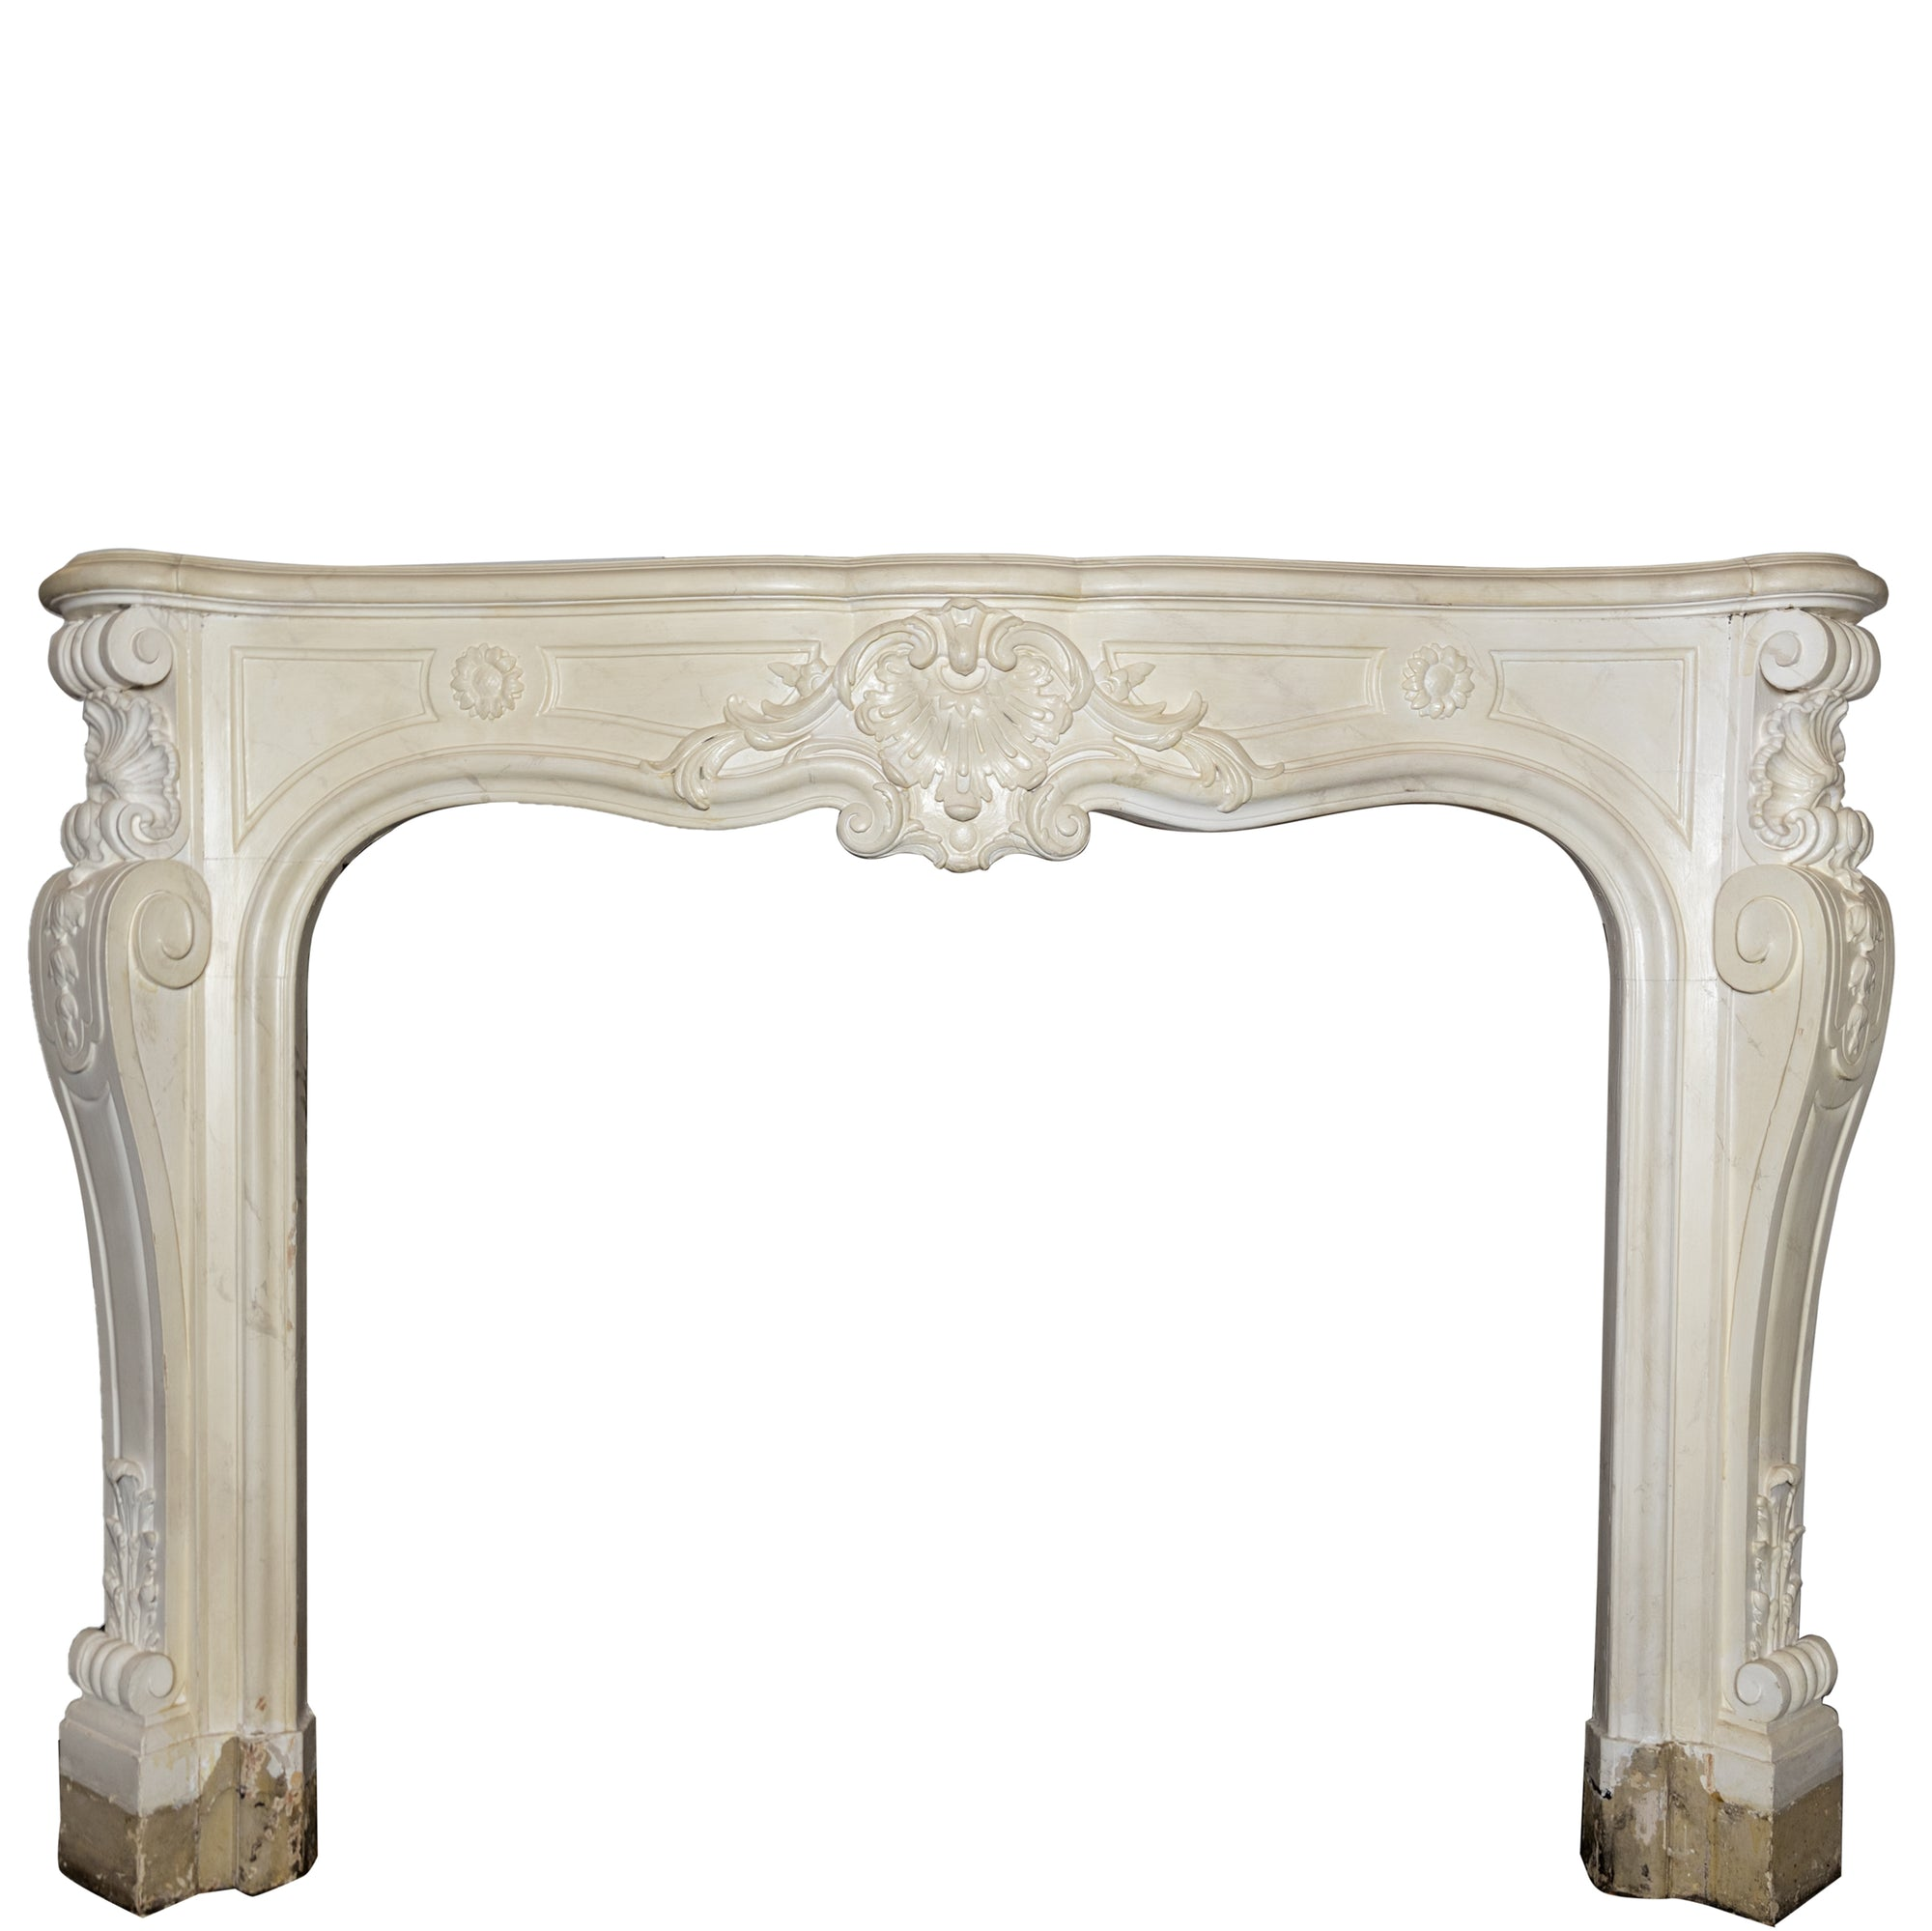 Antique Victorian Louis Style Wooden Fireplace Surround | The Architectural Forum